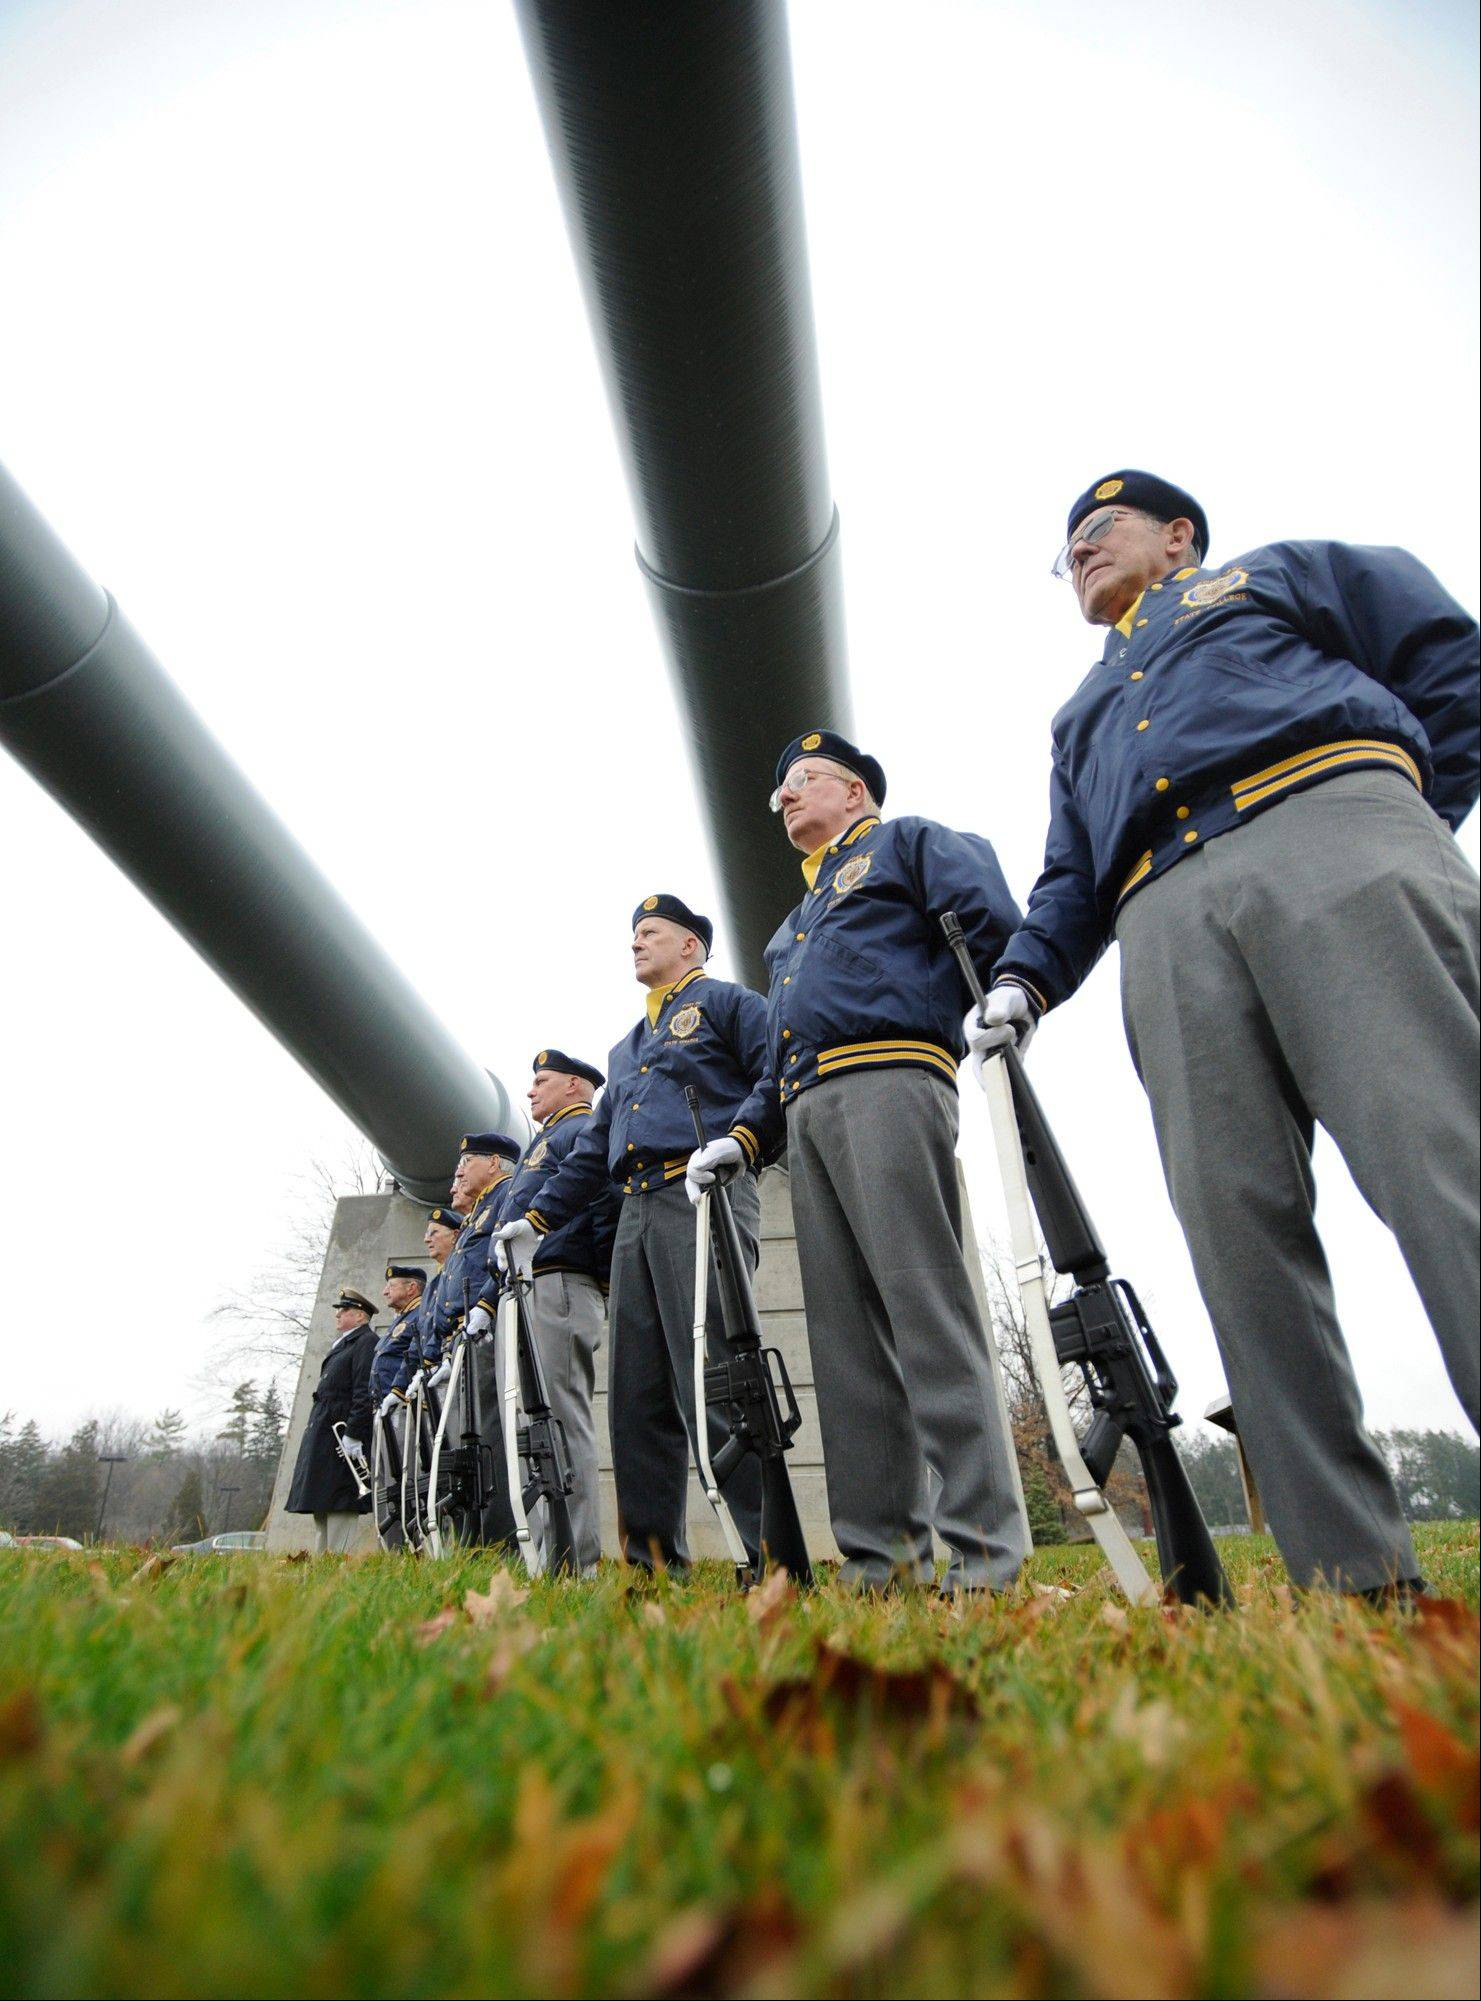 The State College American Legion Post 245 honor guard stands at attention during a Pearl Harbor Remembrance Day and ceremony at the Pennsylvania Military Museum, in Boalsburg, Pa., Friday, Dec. 7, 2012 is